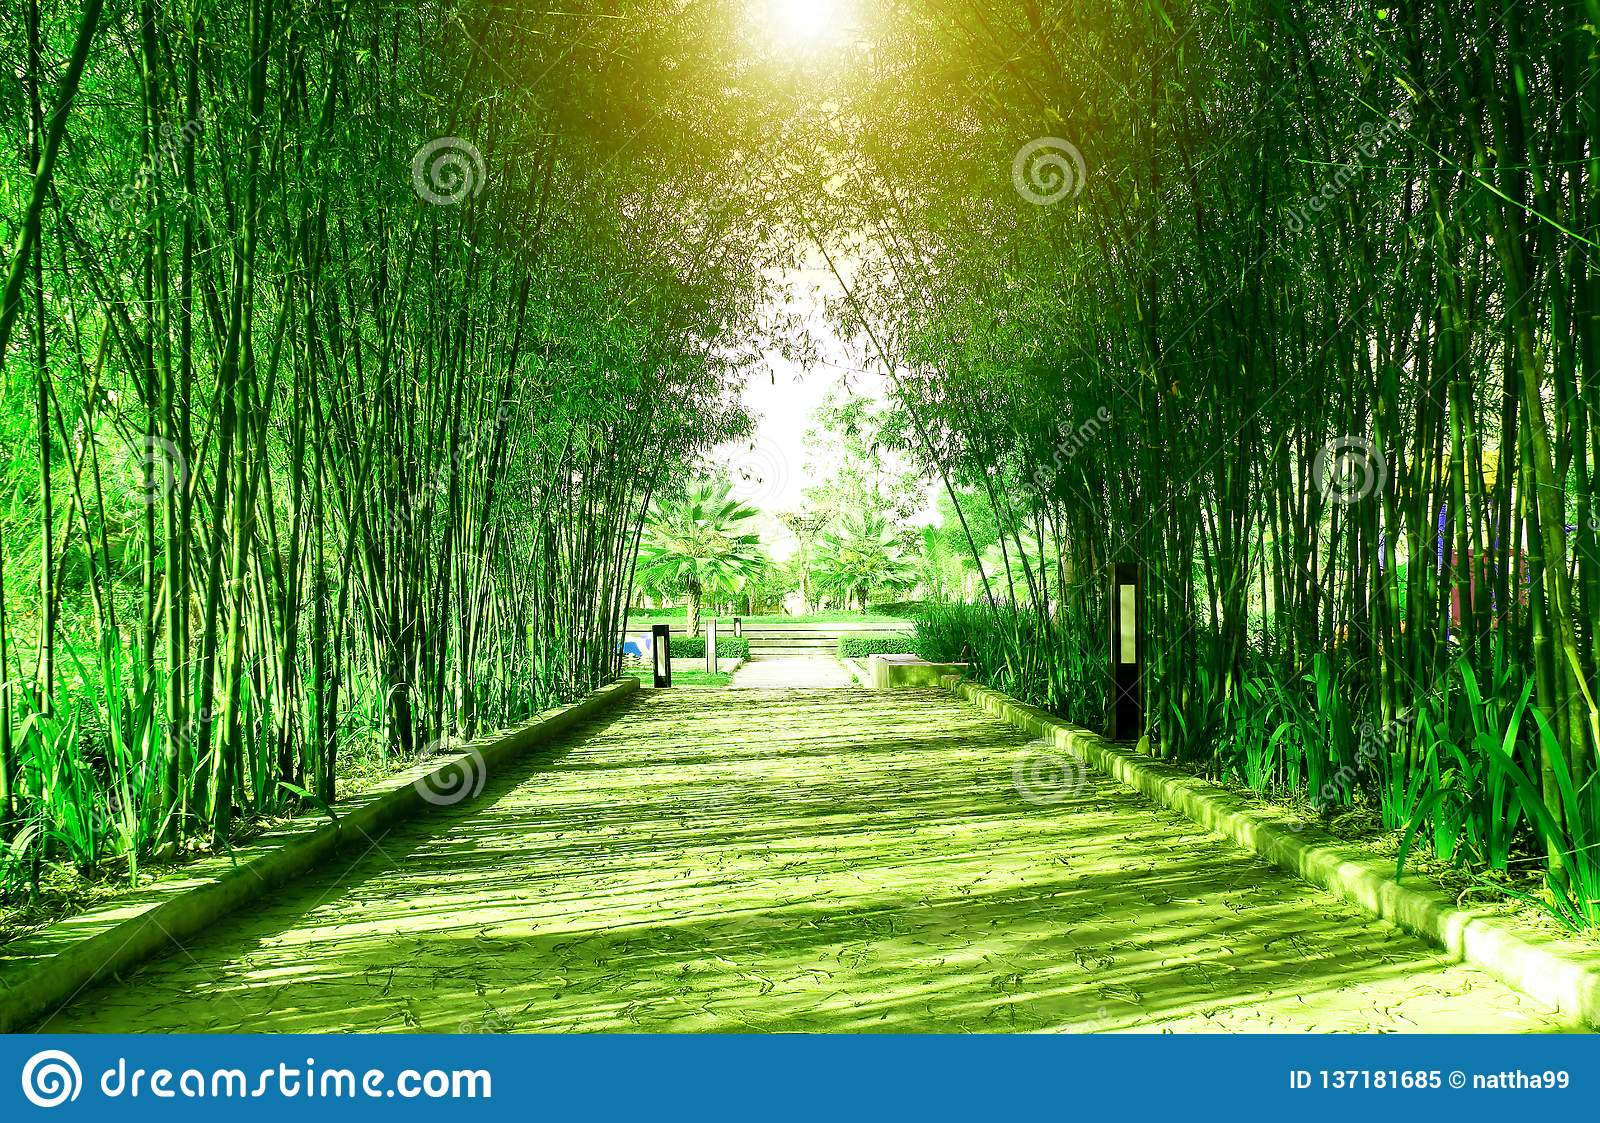 Tunnel green bamboo forest and walk way in the public park